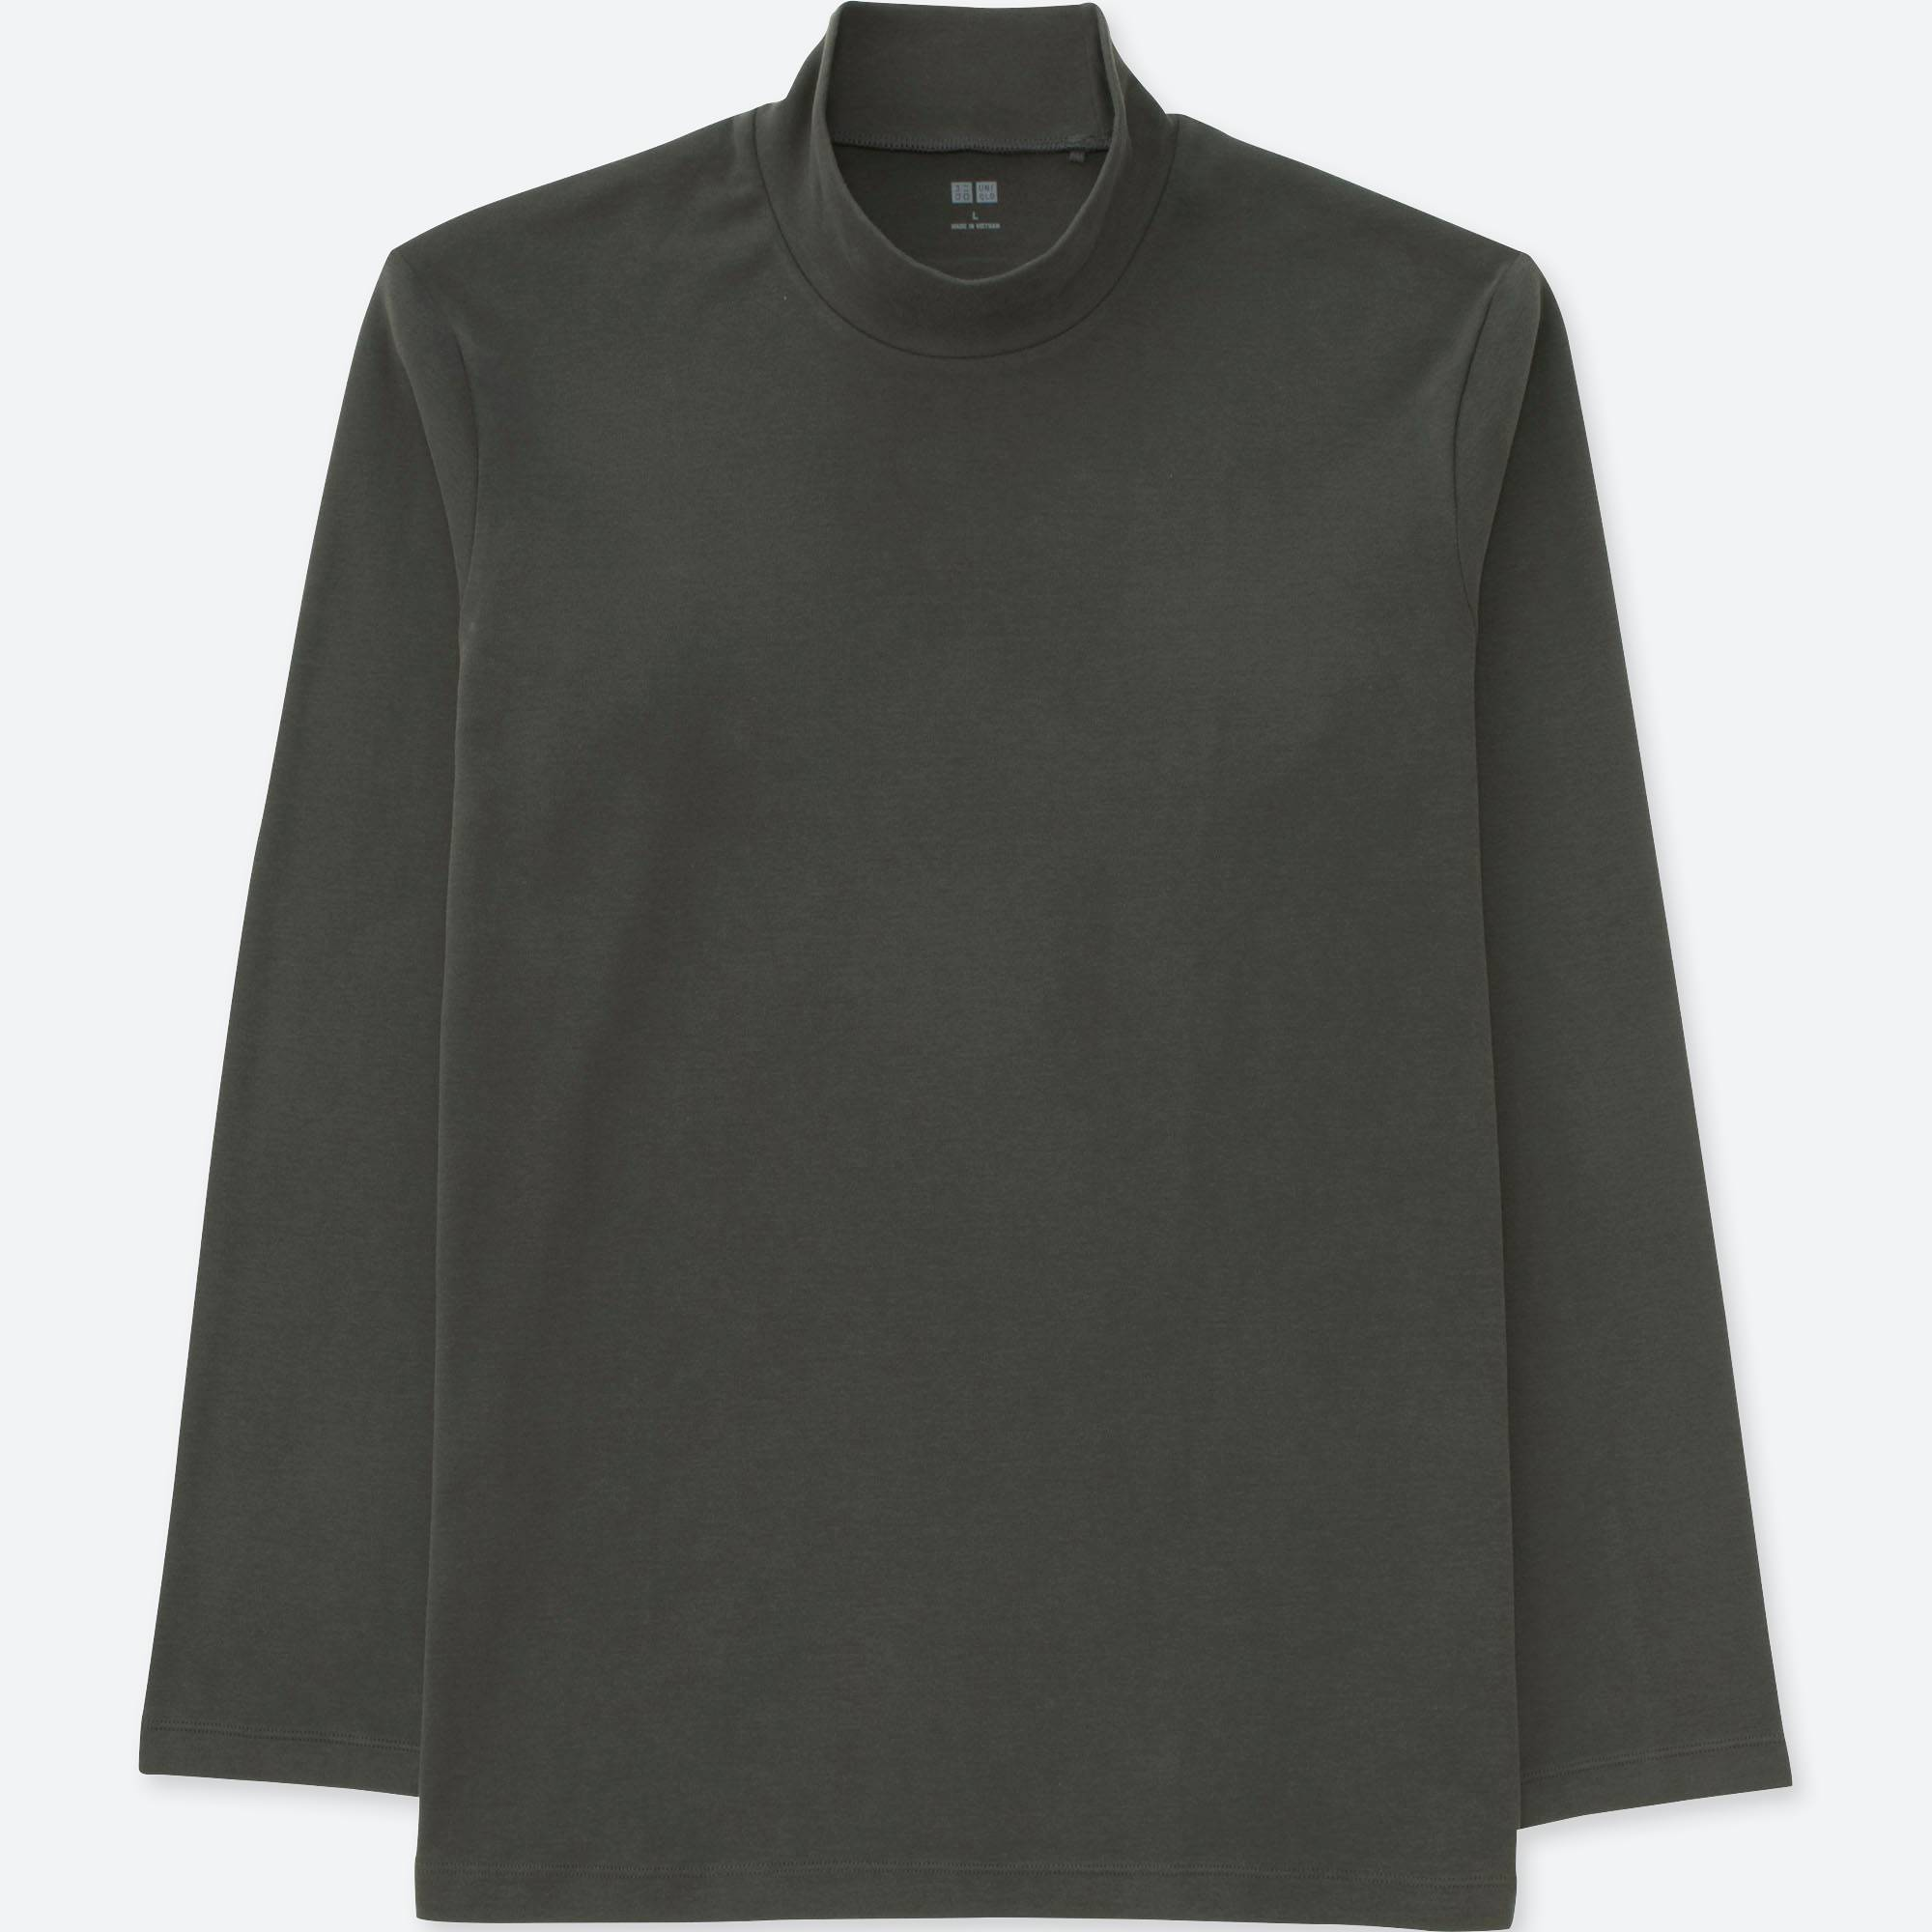 MEN SOFT TOUCH MOCK NECK LONG SLEEVE T-SHIRT | UNIQLO US